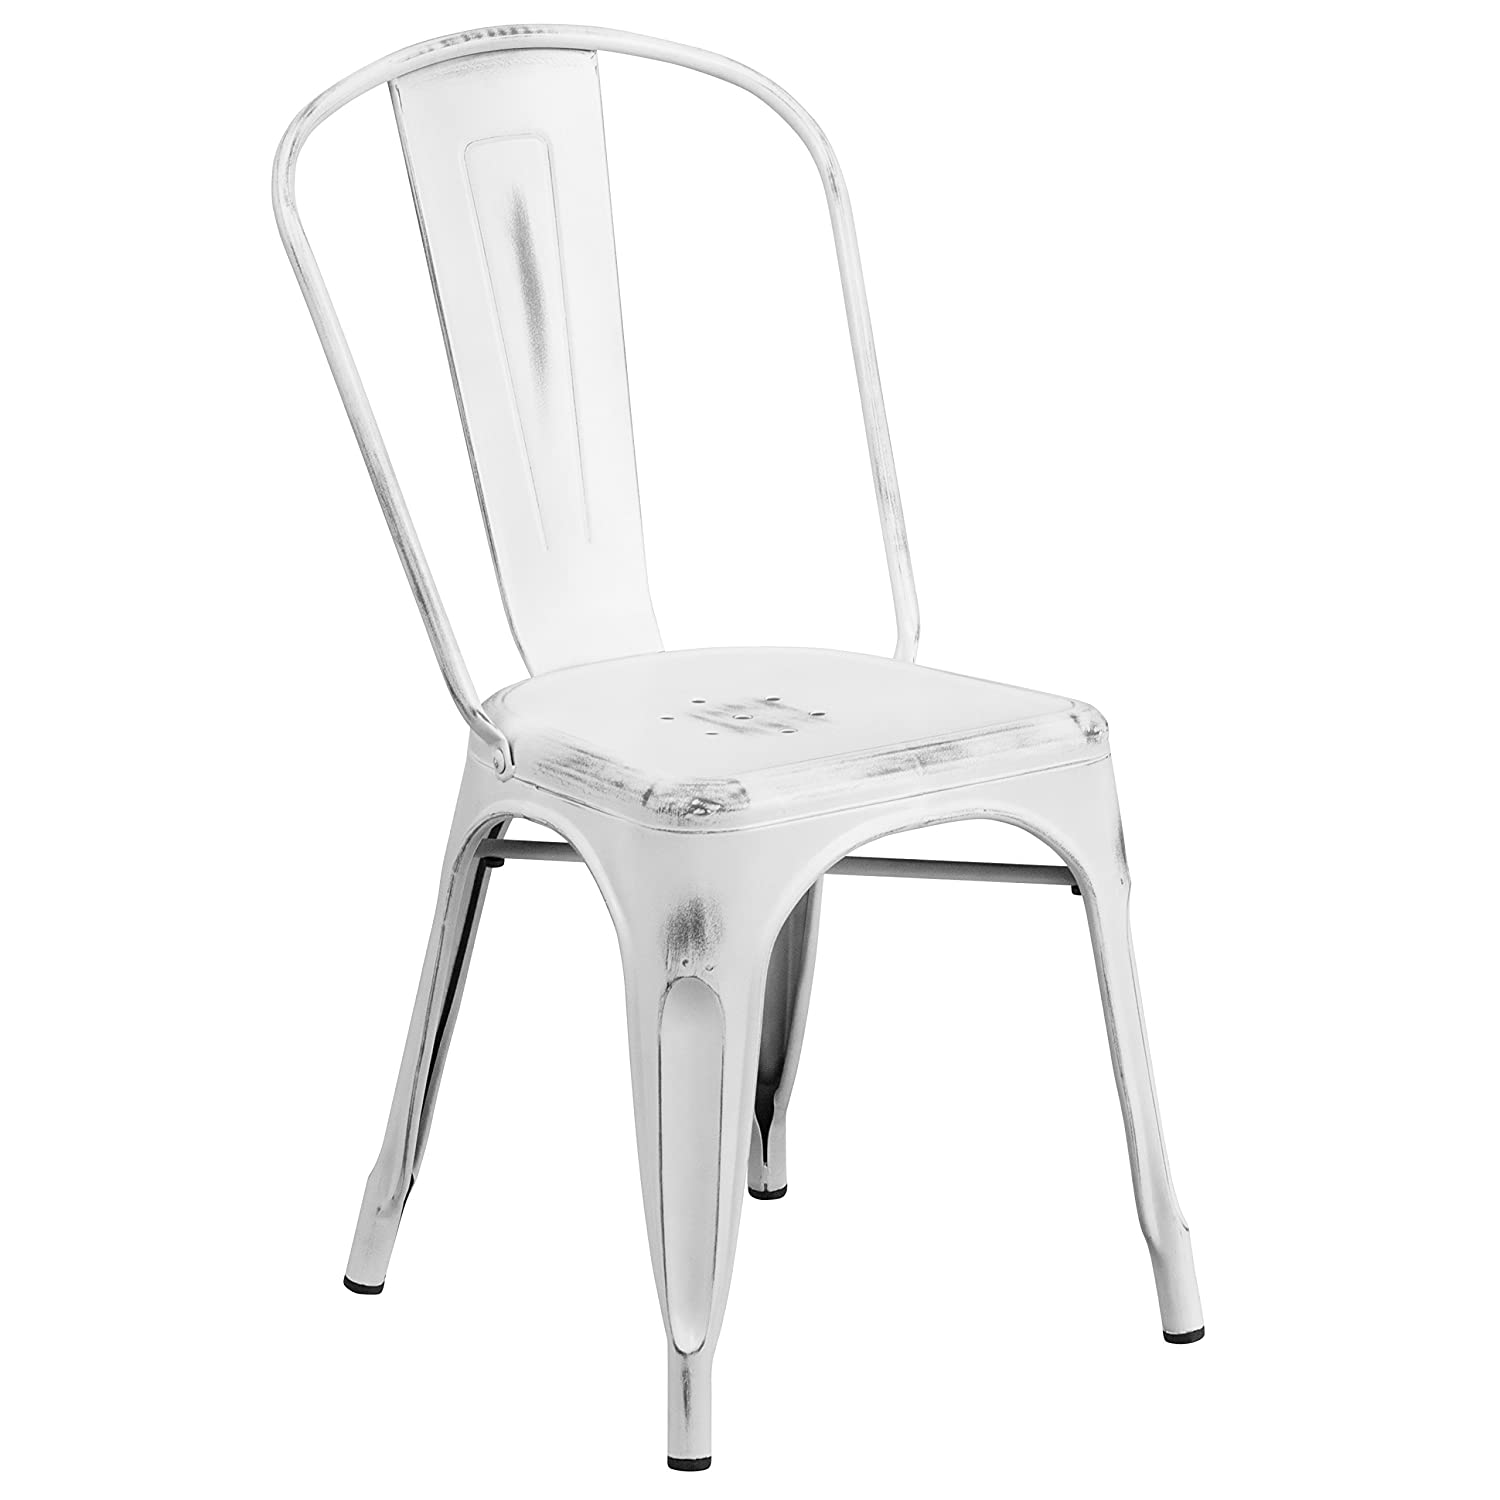 dining kitchen distressed indoor furniture com stackable white amazon dp chair metal outdoor flash